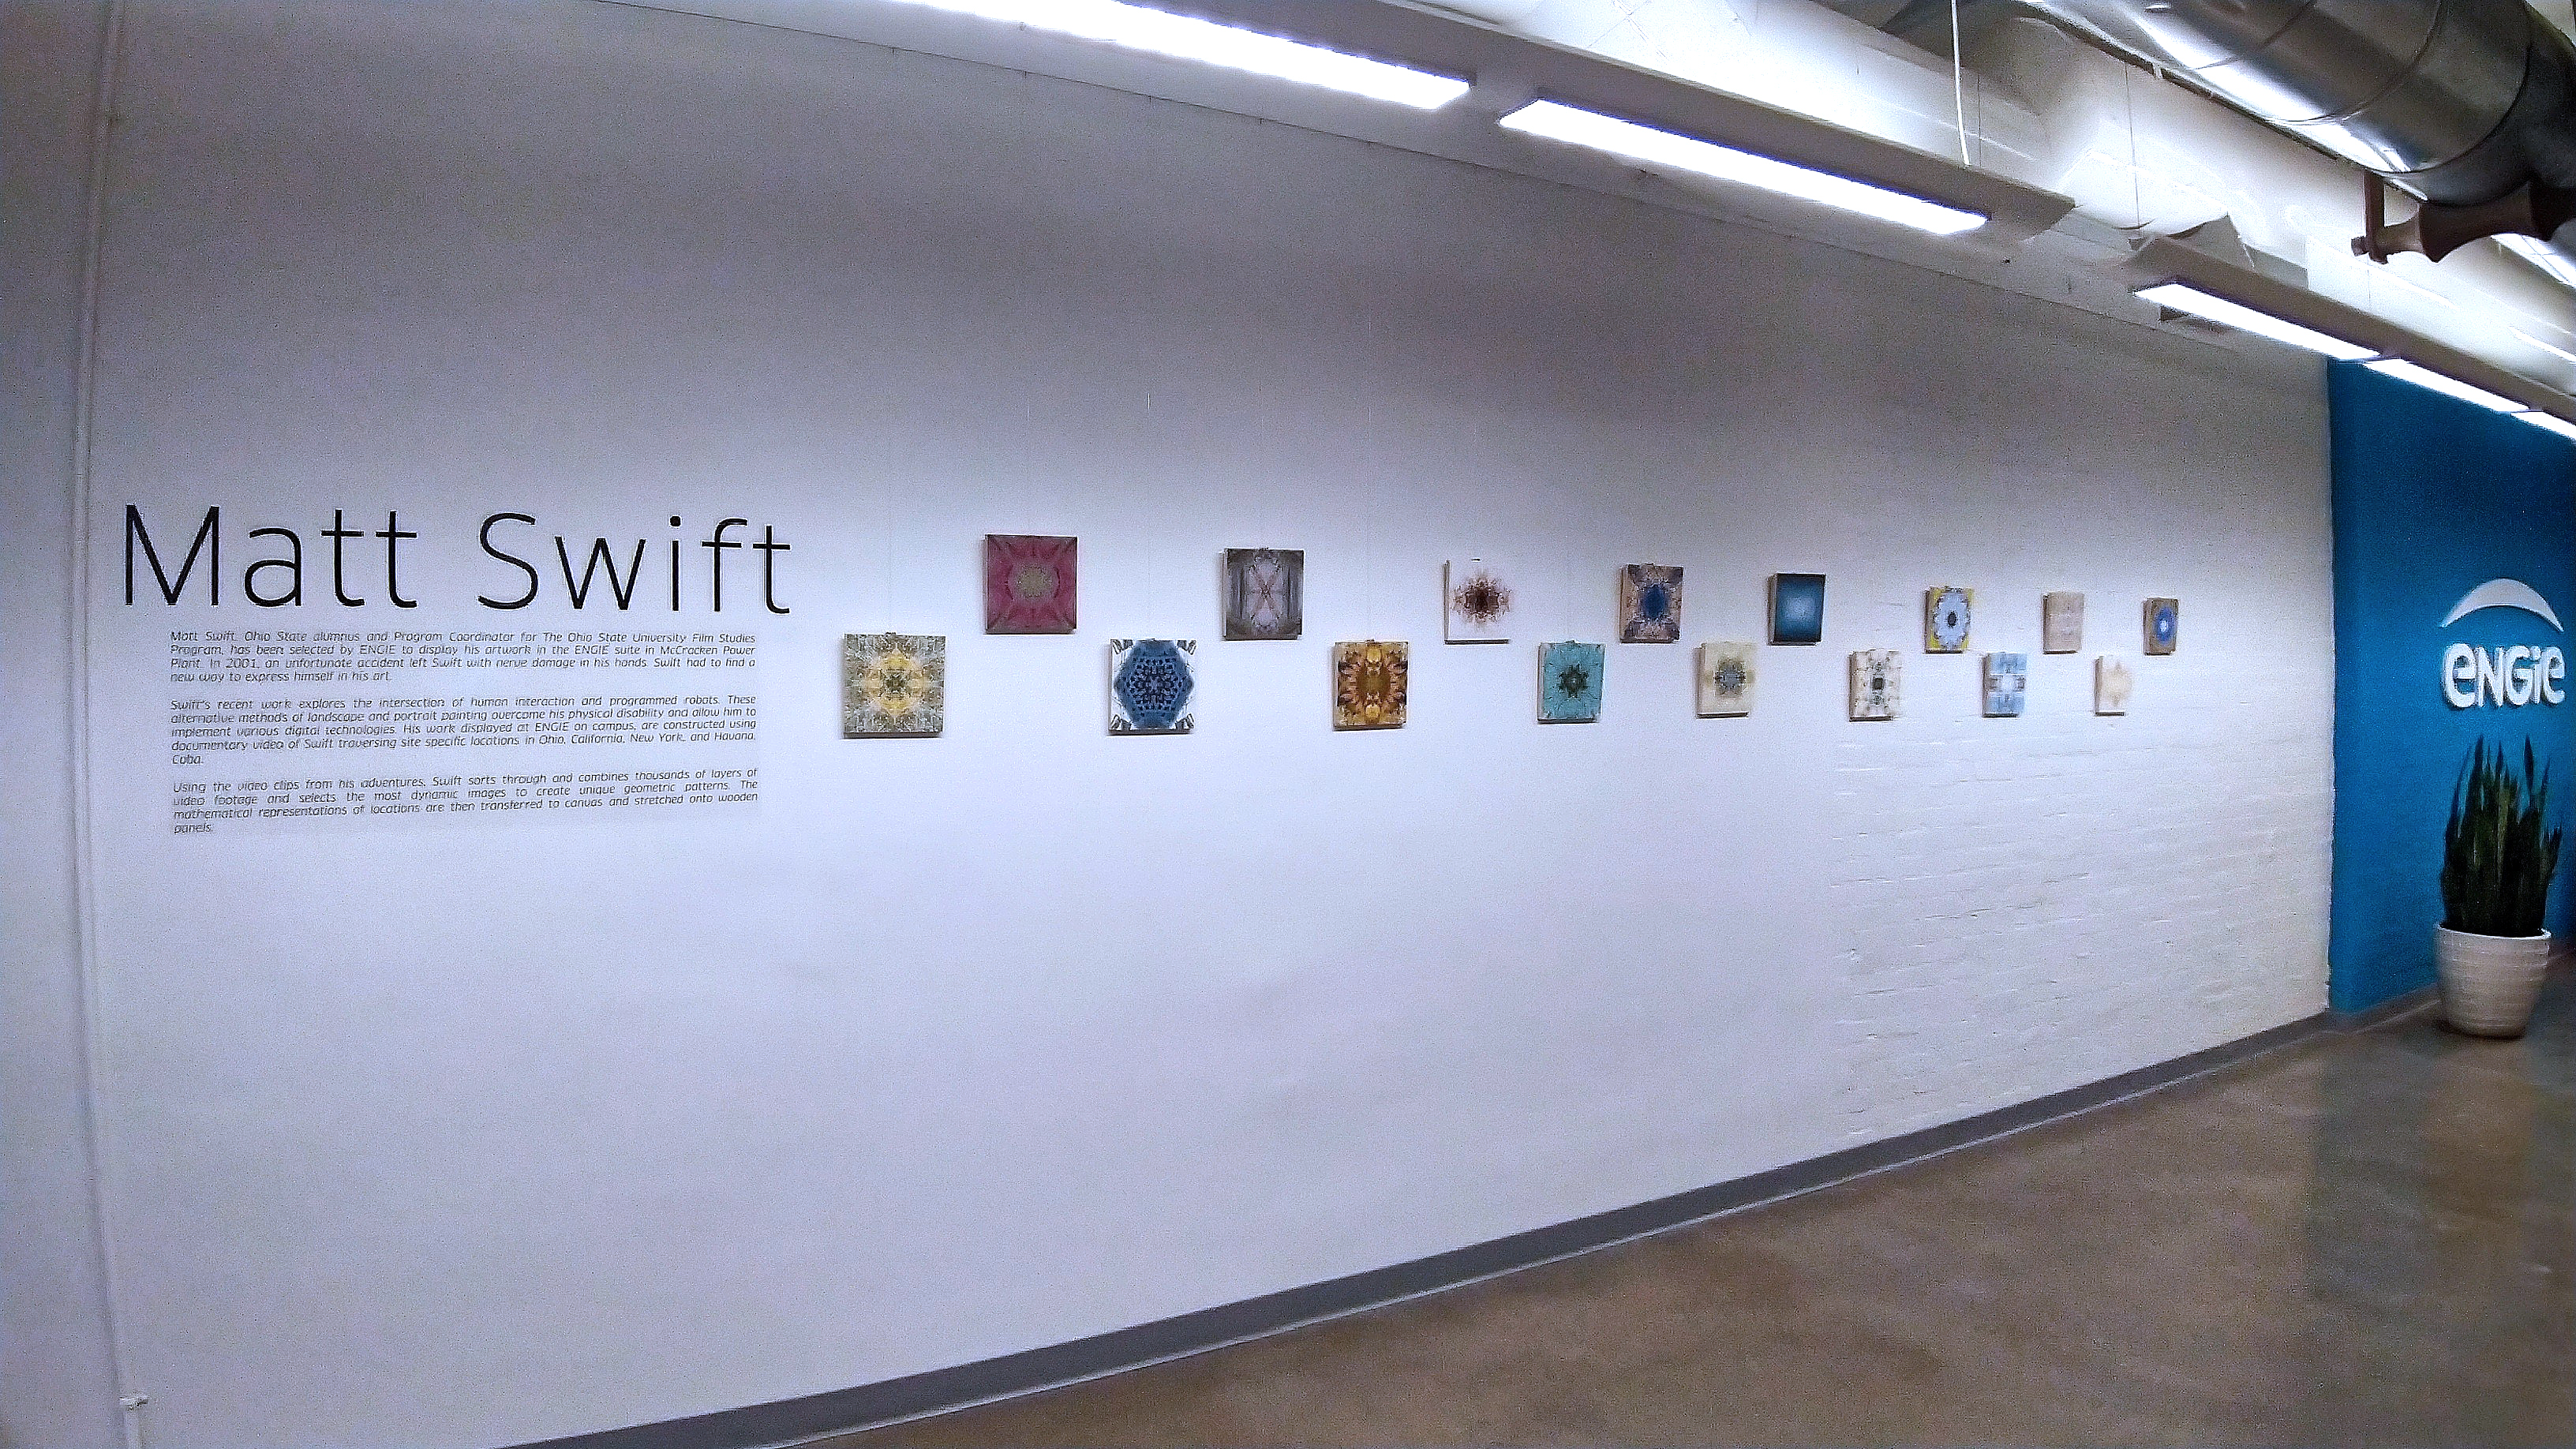 Photo of Matt Swift art in Engie Gallery